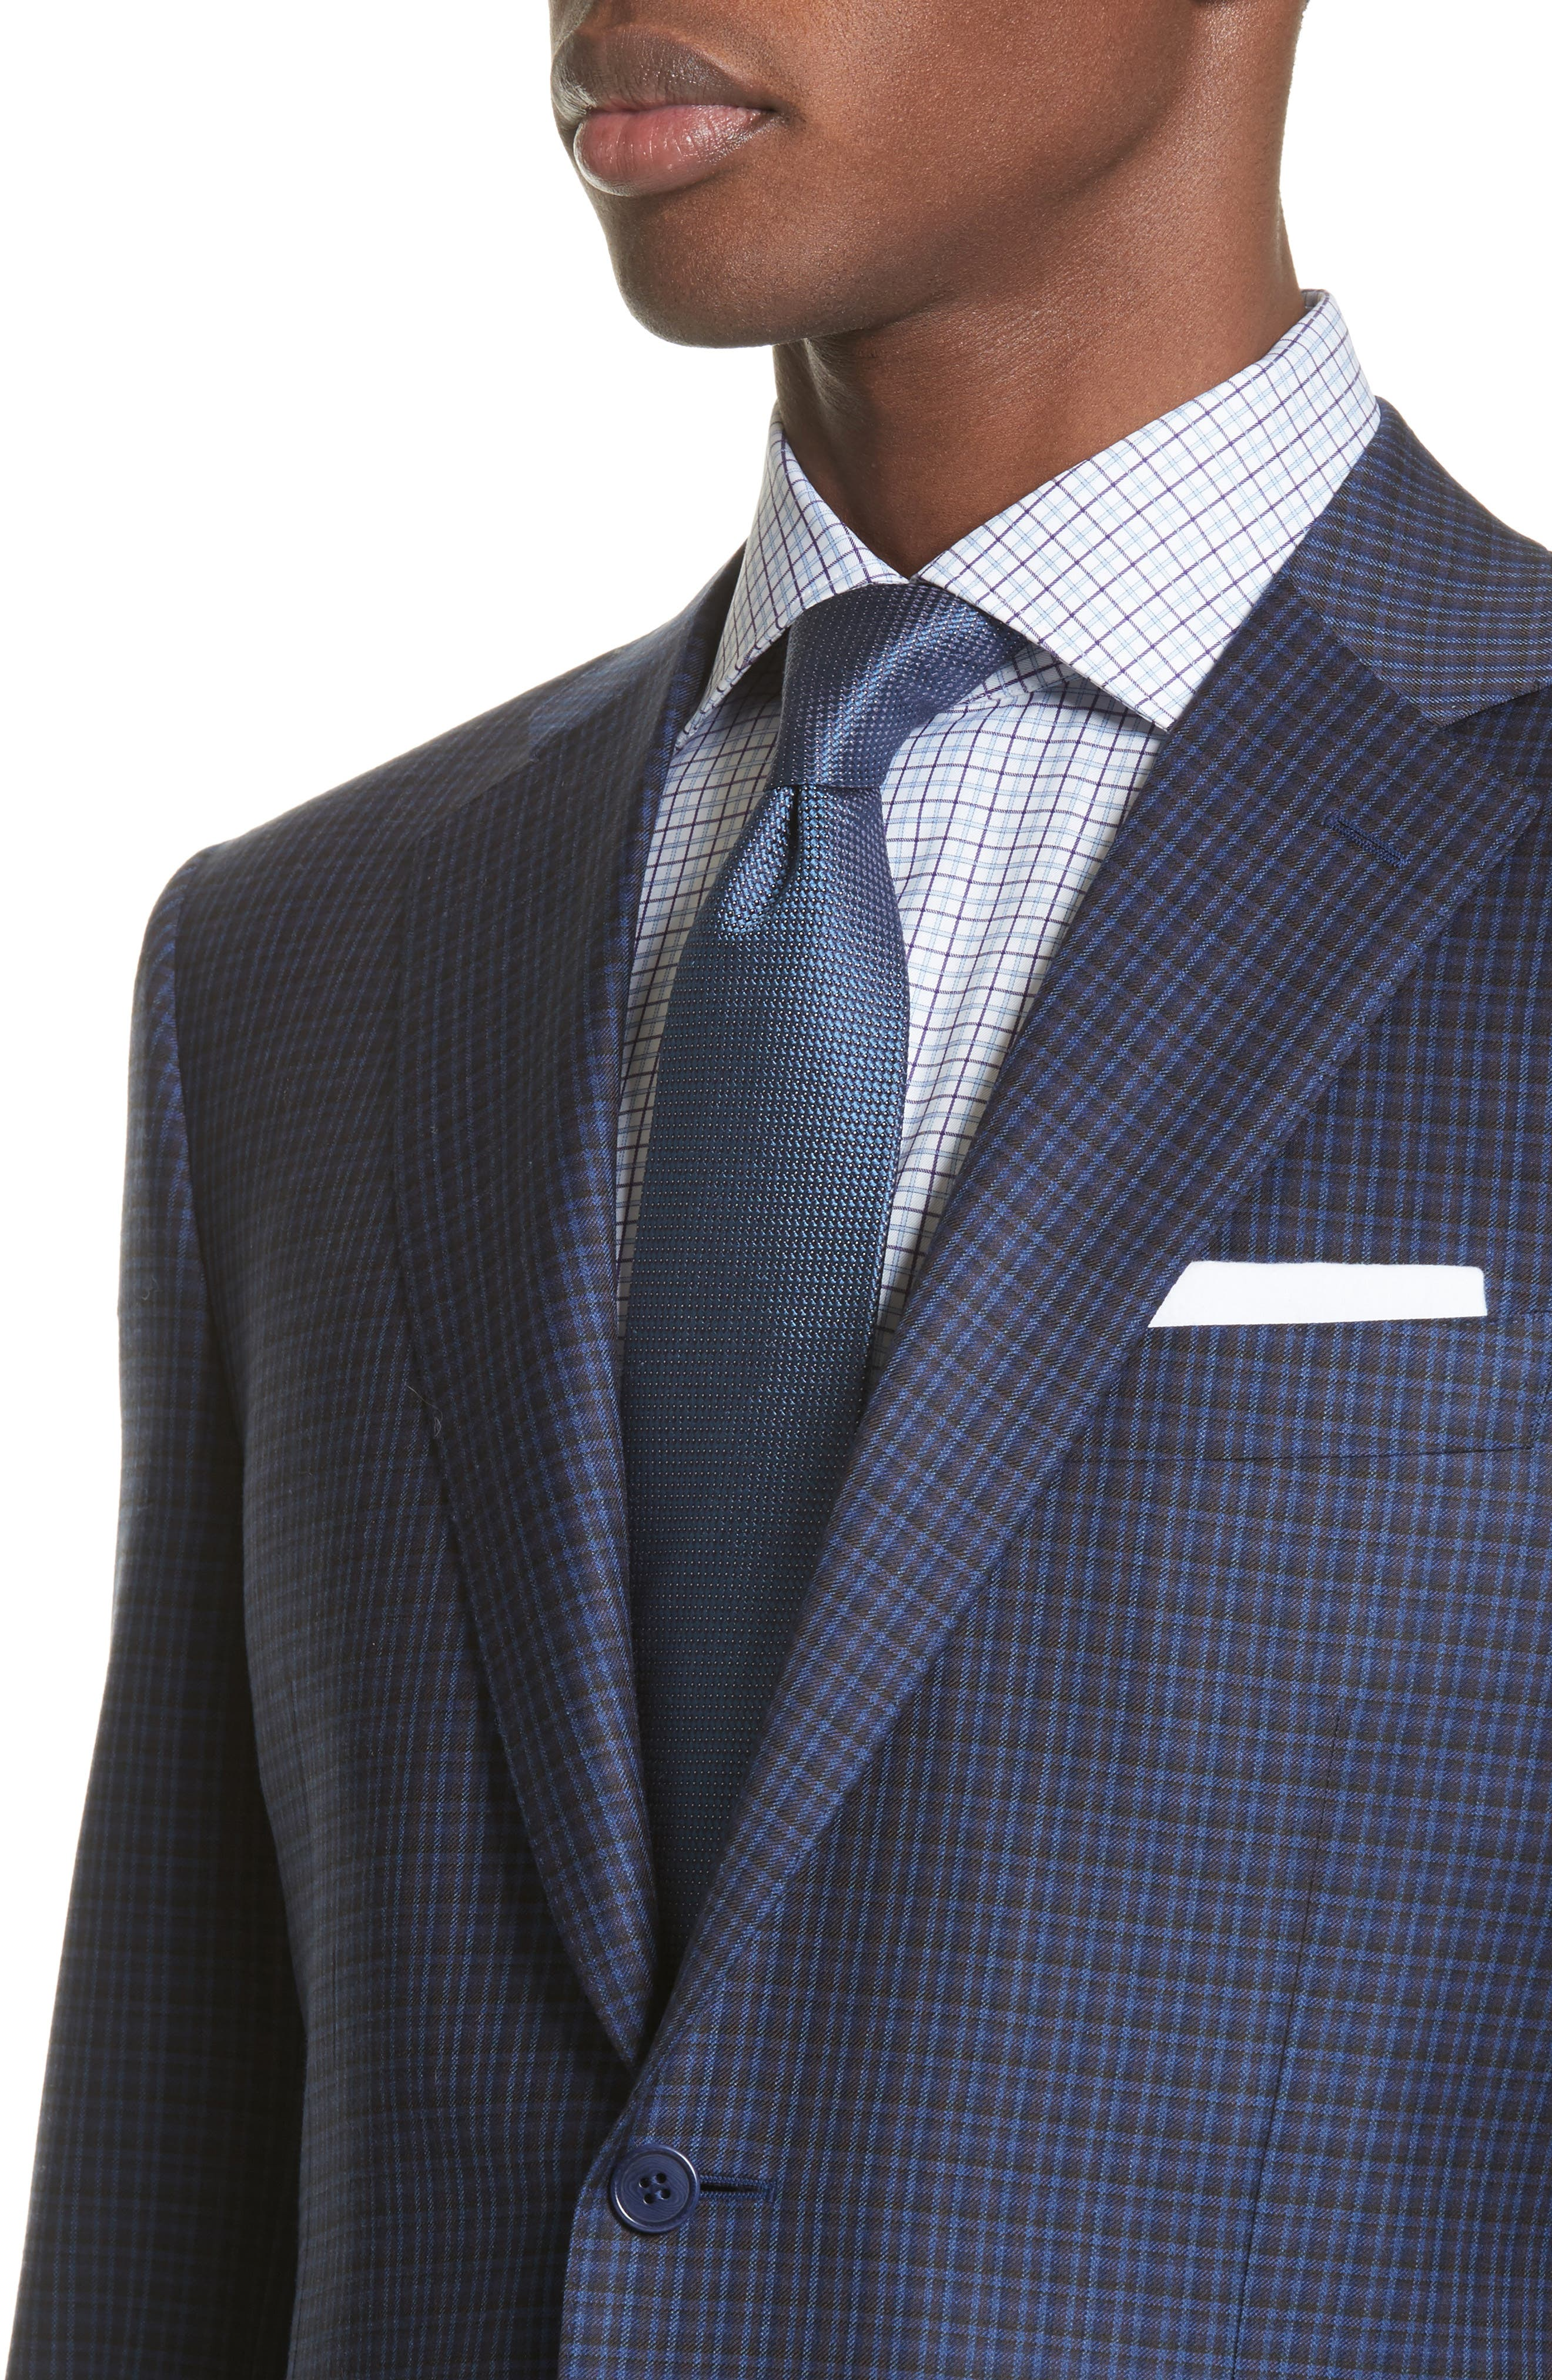 Classic Fit Check Wool Sport Coat,                             Alternate thumbnail 4, color,                             400